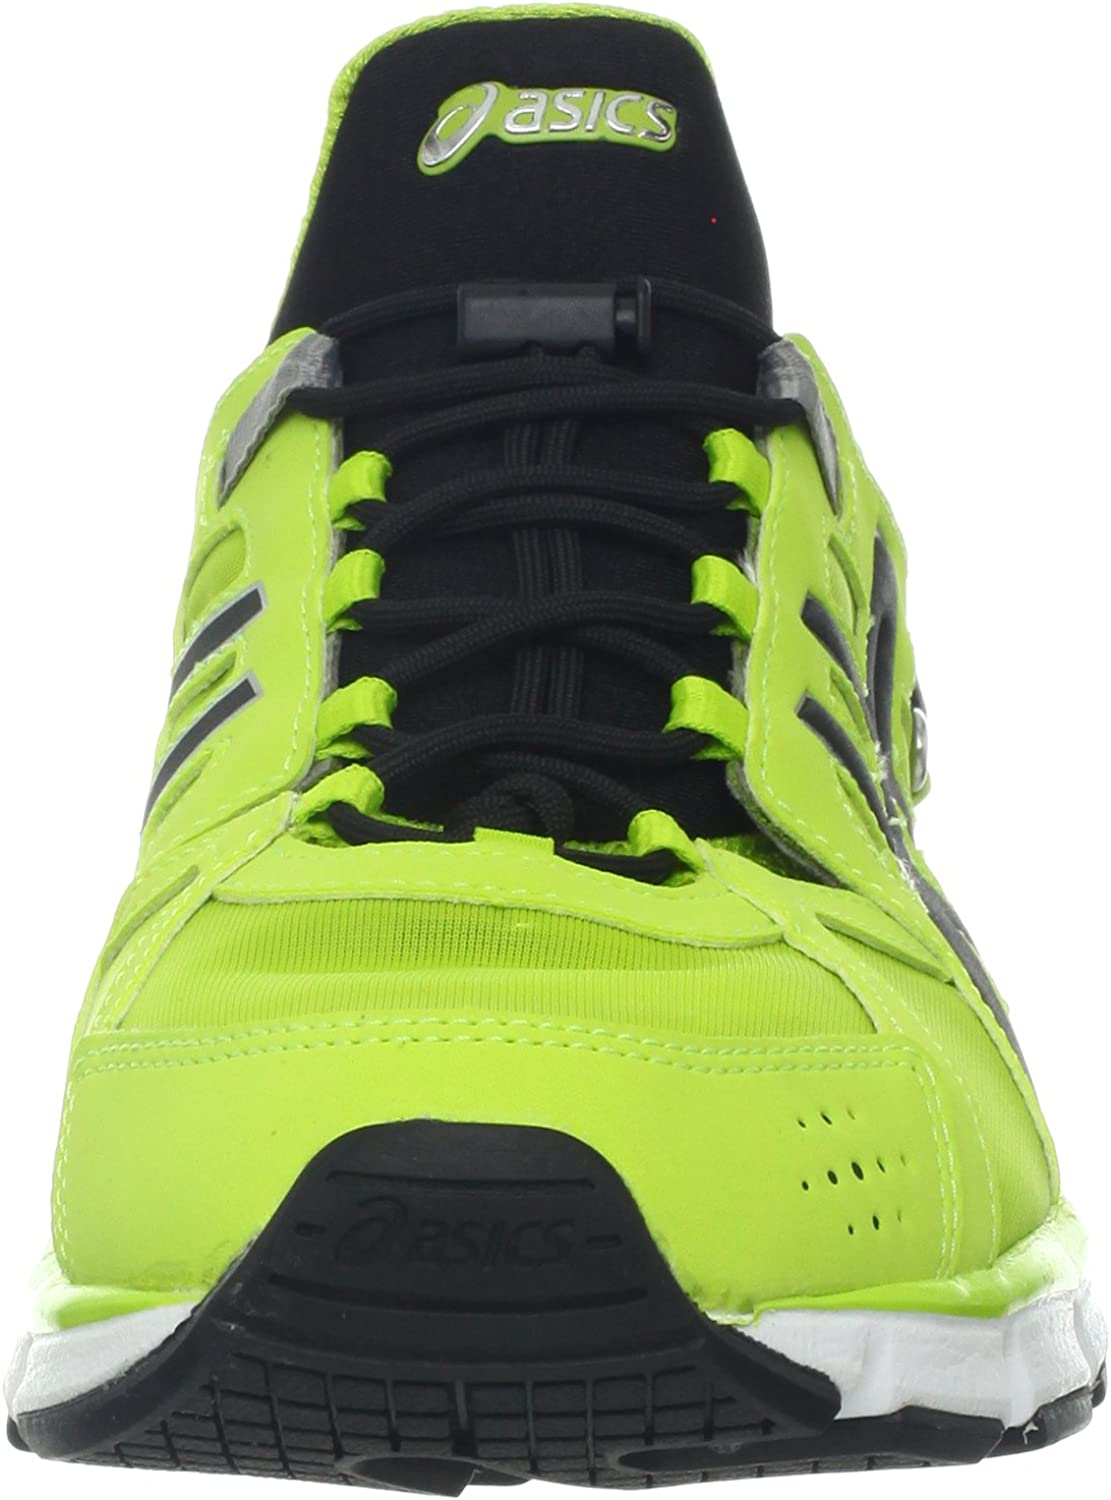 Asics - Zapatillas de Running para Hombre, Color, Talla 46: Amazon ...